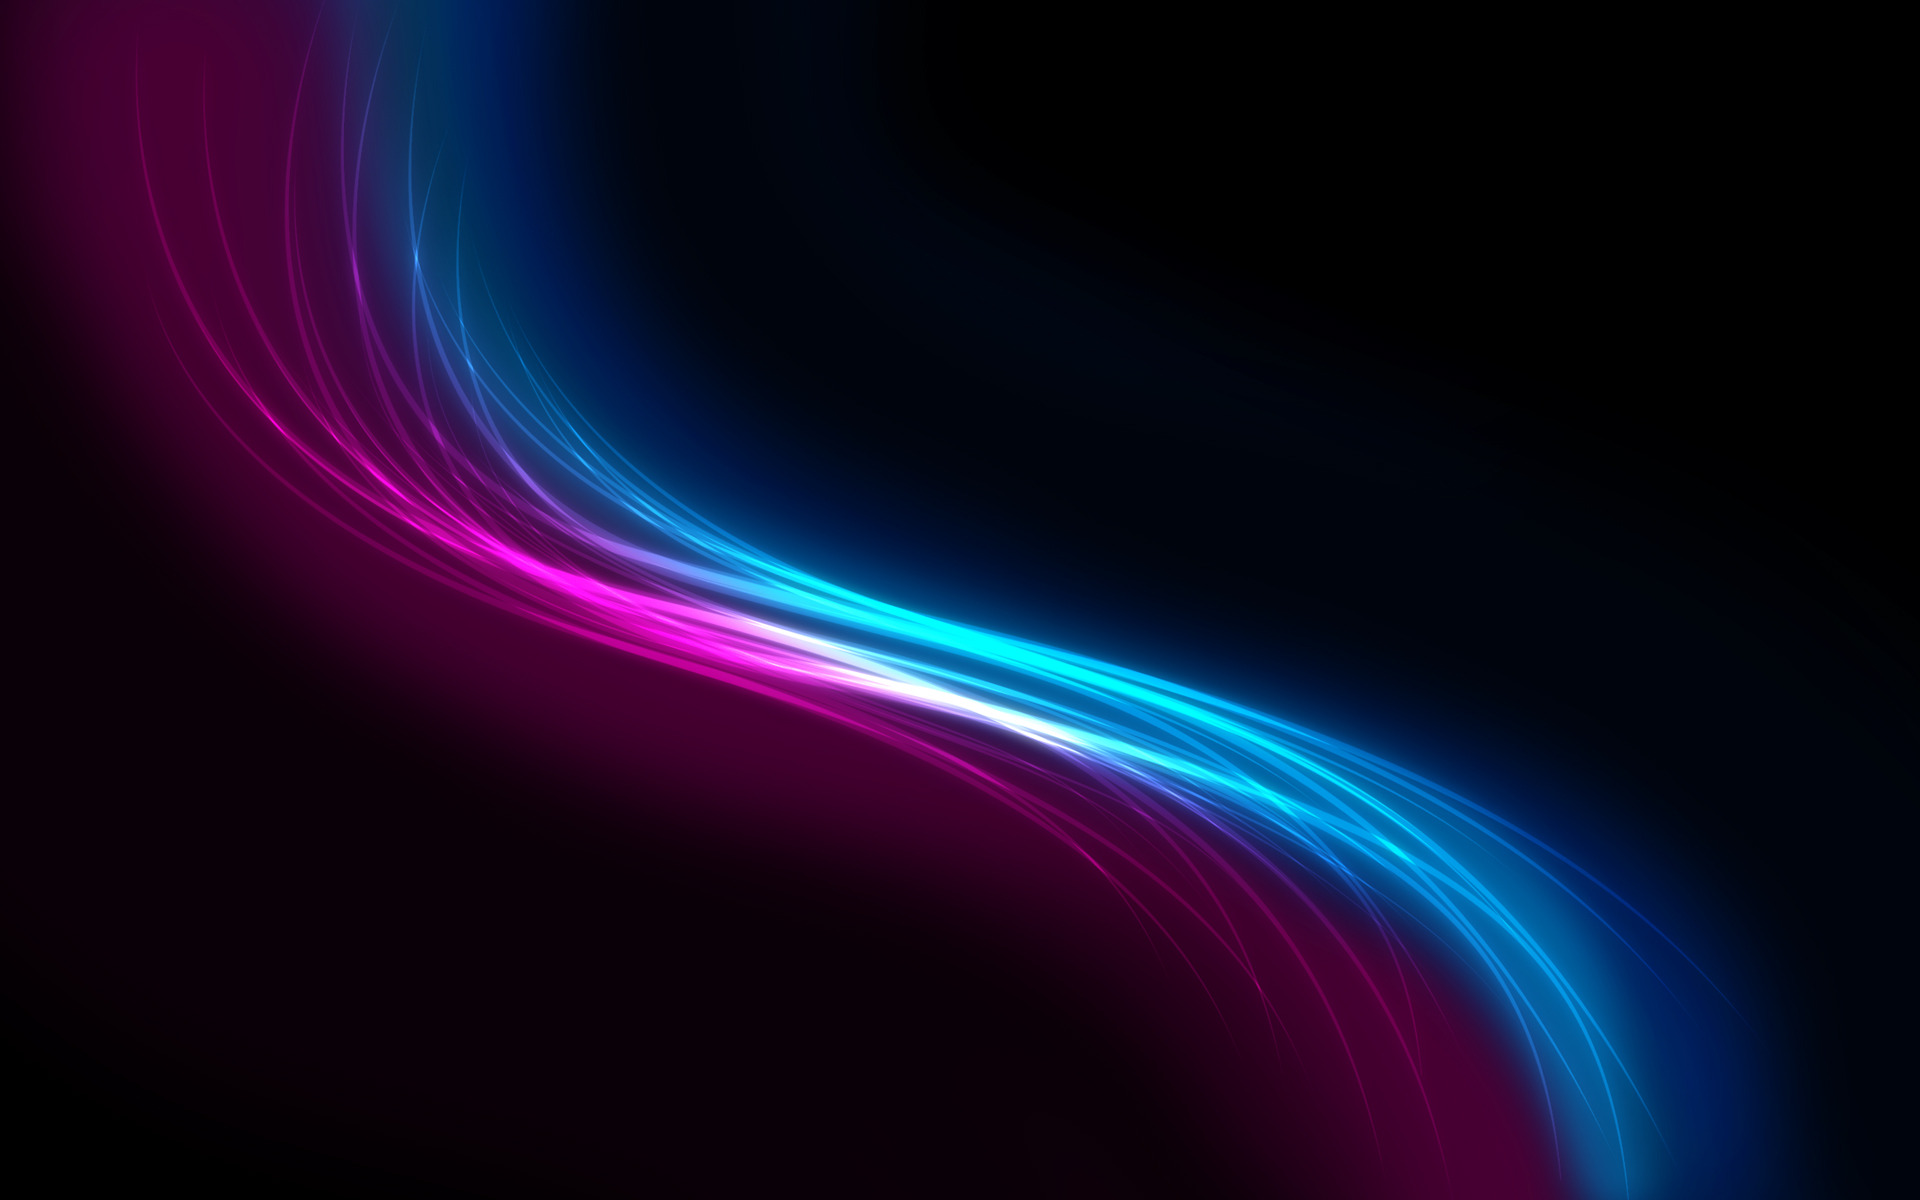 3d Wallpapers Blue Theme Wallpaper Glowing Wallpapers Movie Hd Wallpapers